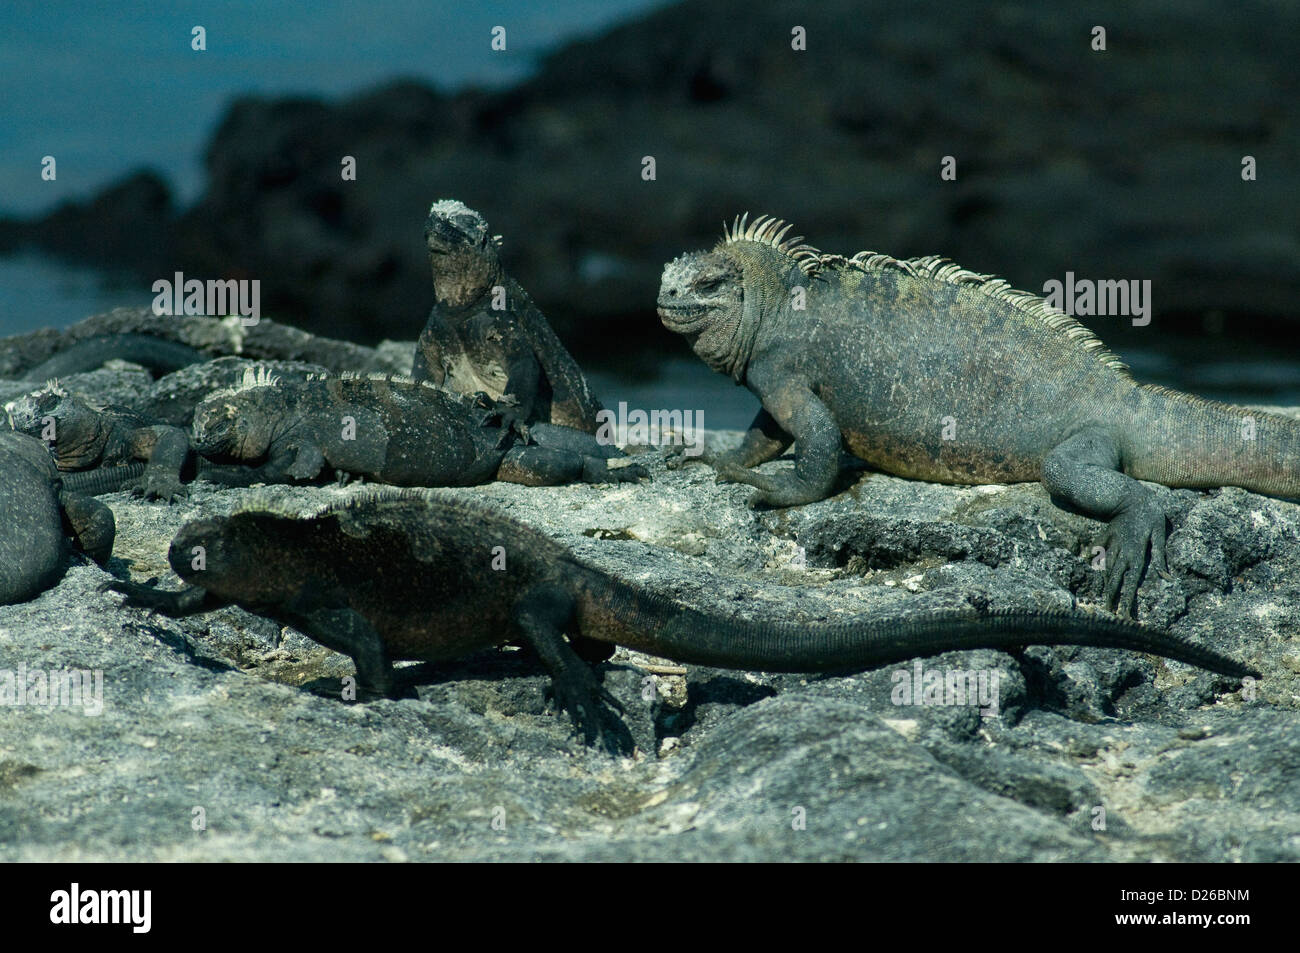 Marine iguanas of various sizes and colours enjoy sea and shore life in the protected Galapagos islands - Stock Image